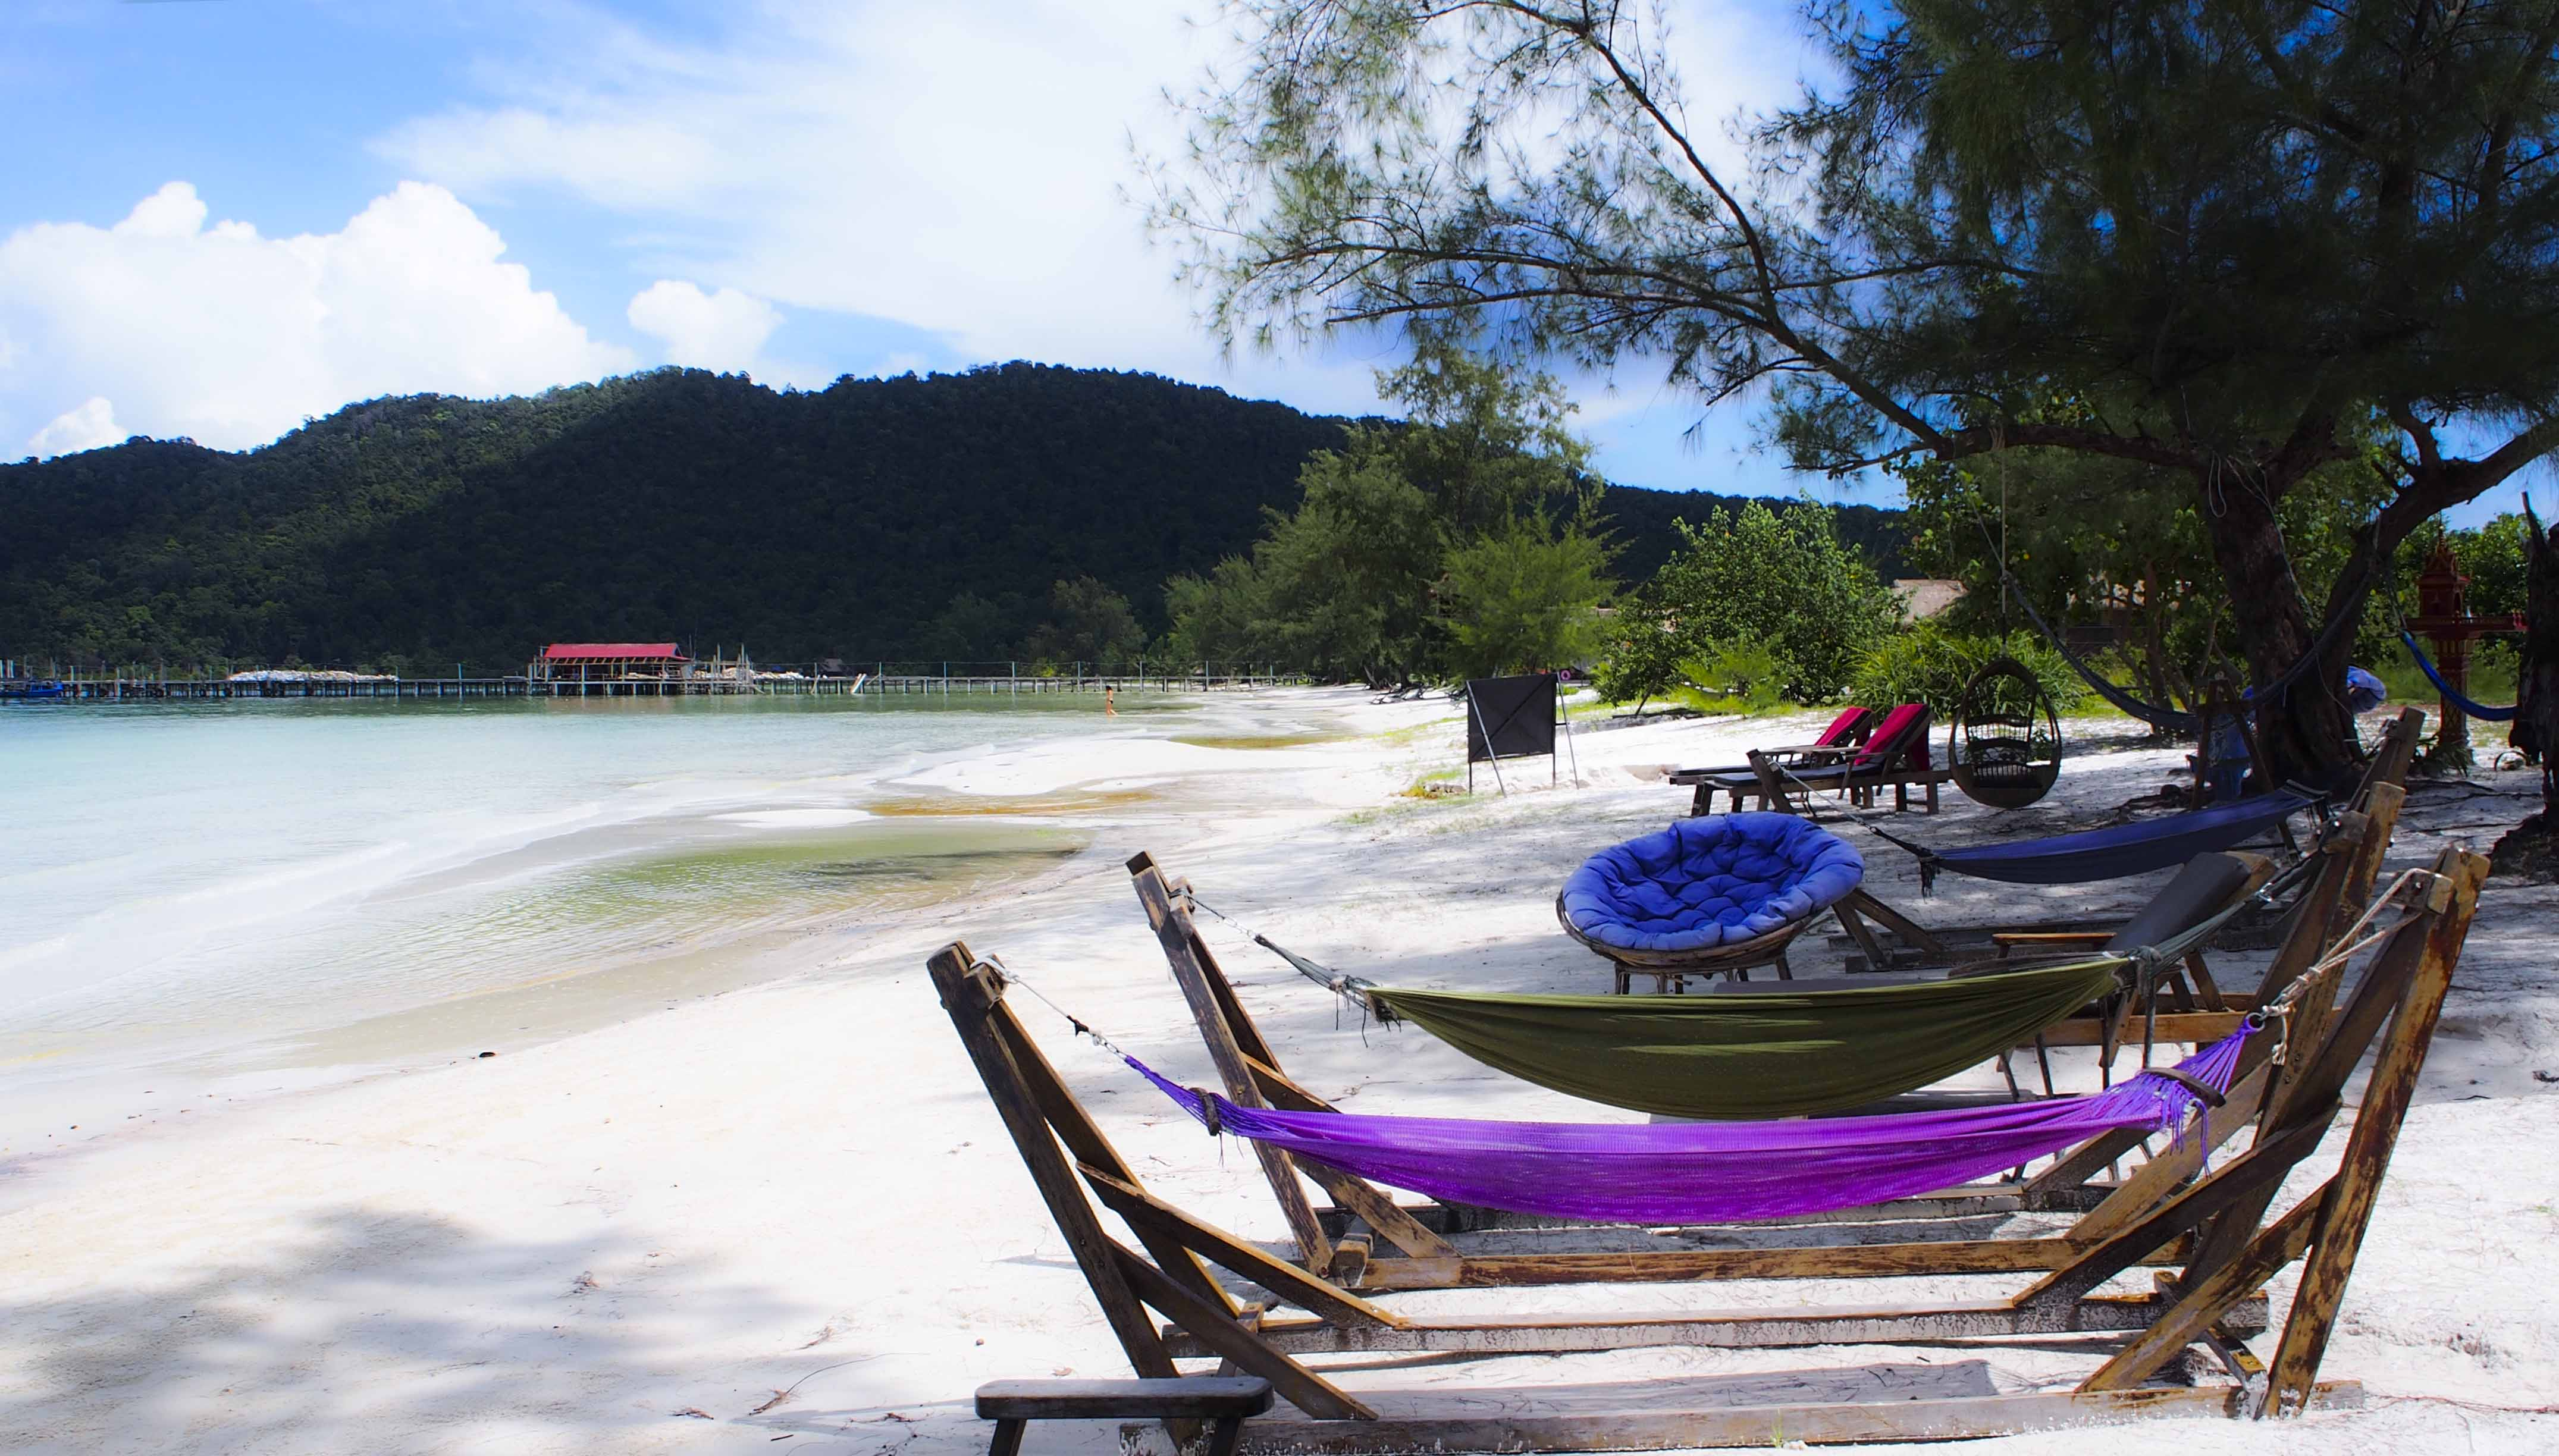 WHAT TO DO IN KOH RONG SAMLEOM